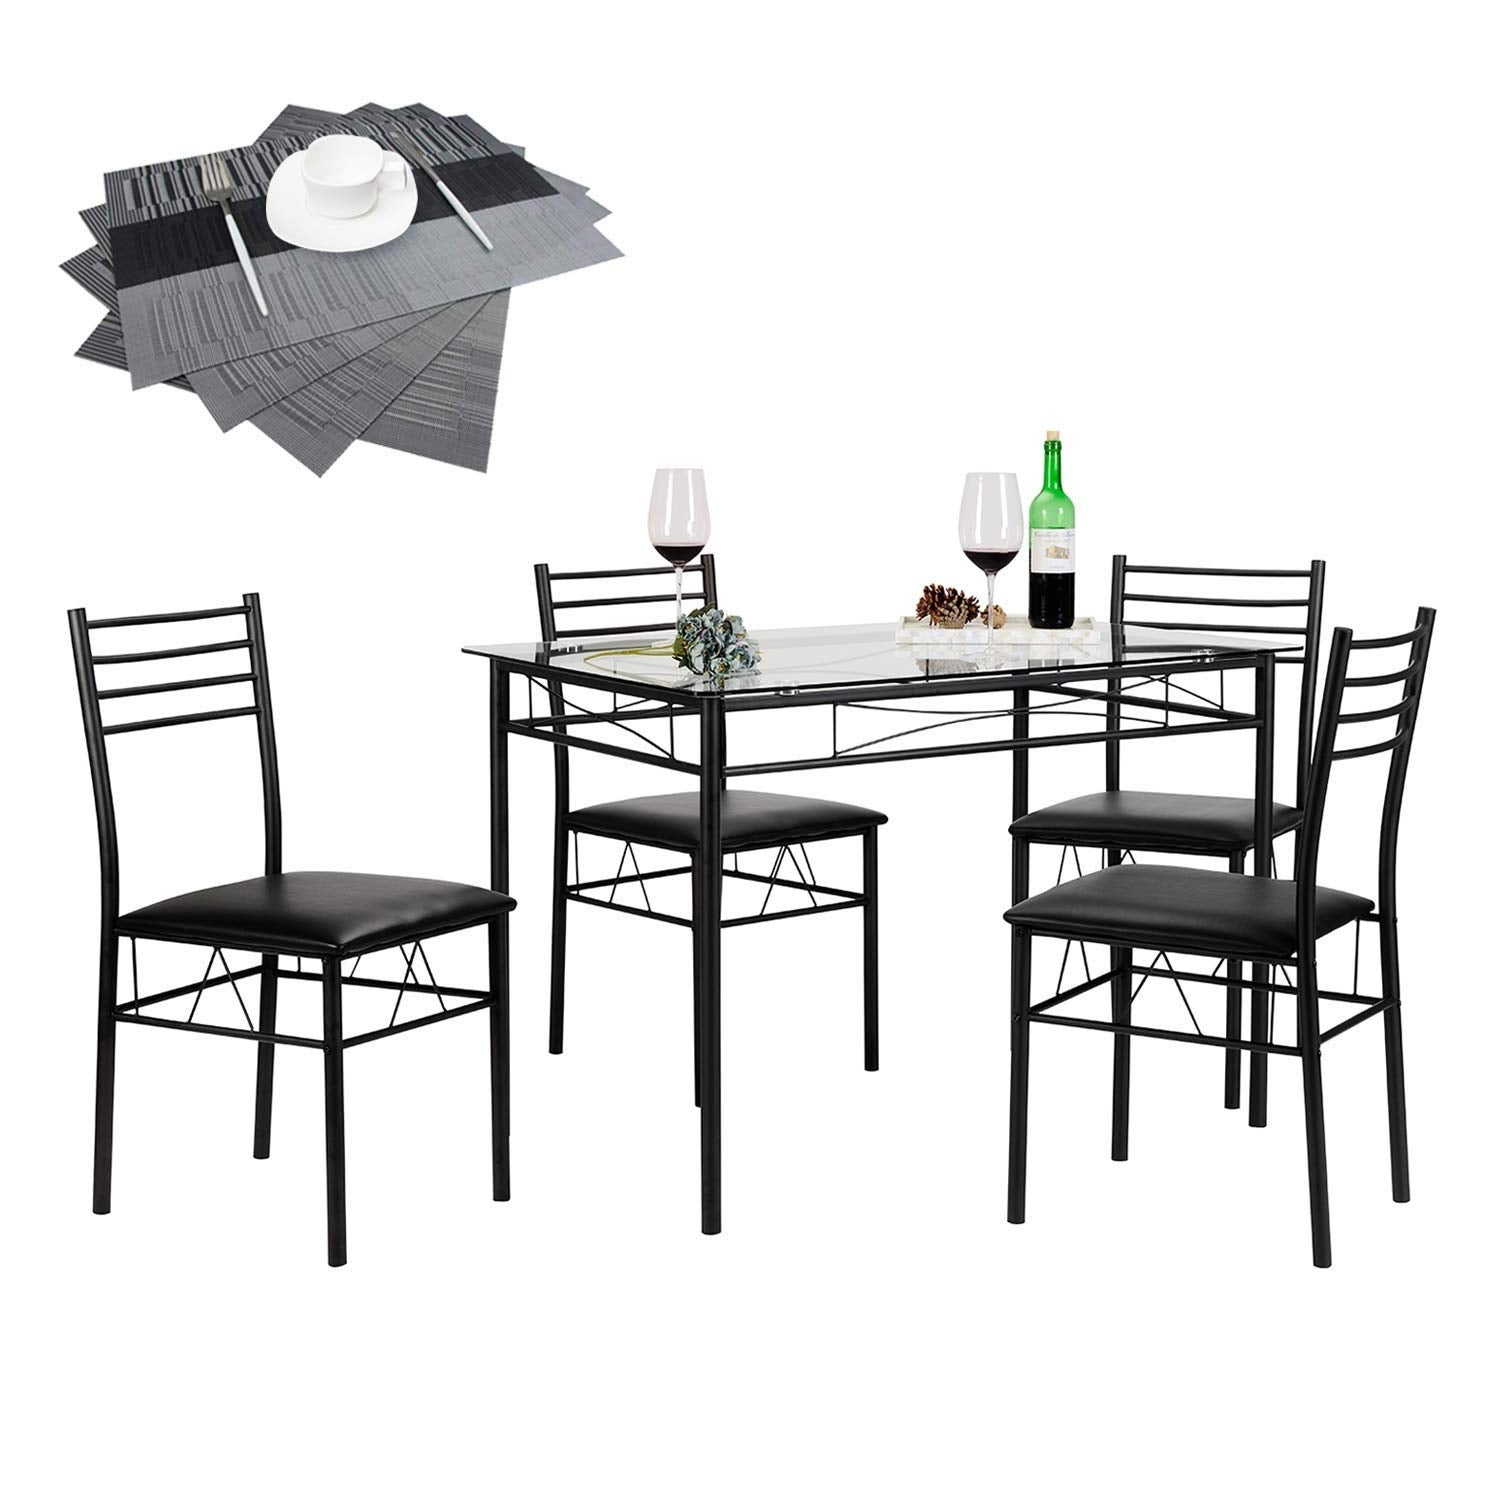 Vecelo Dining Table Set Gl With 4 Chairs Metal Kitchen Room Furniture 5 Pcs Black Free Shipping Today 13047157